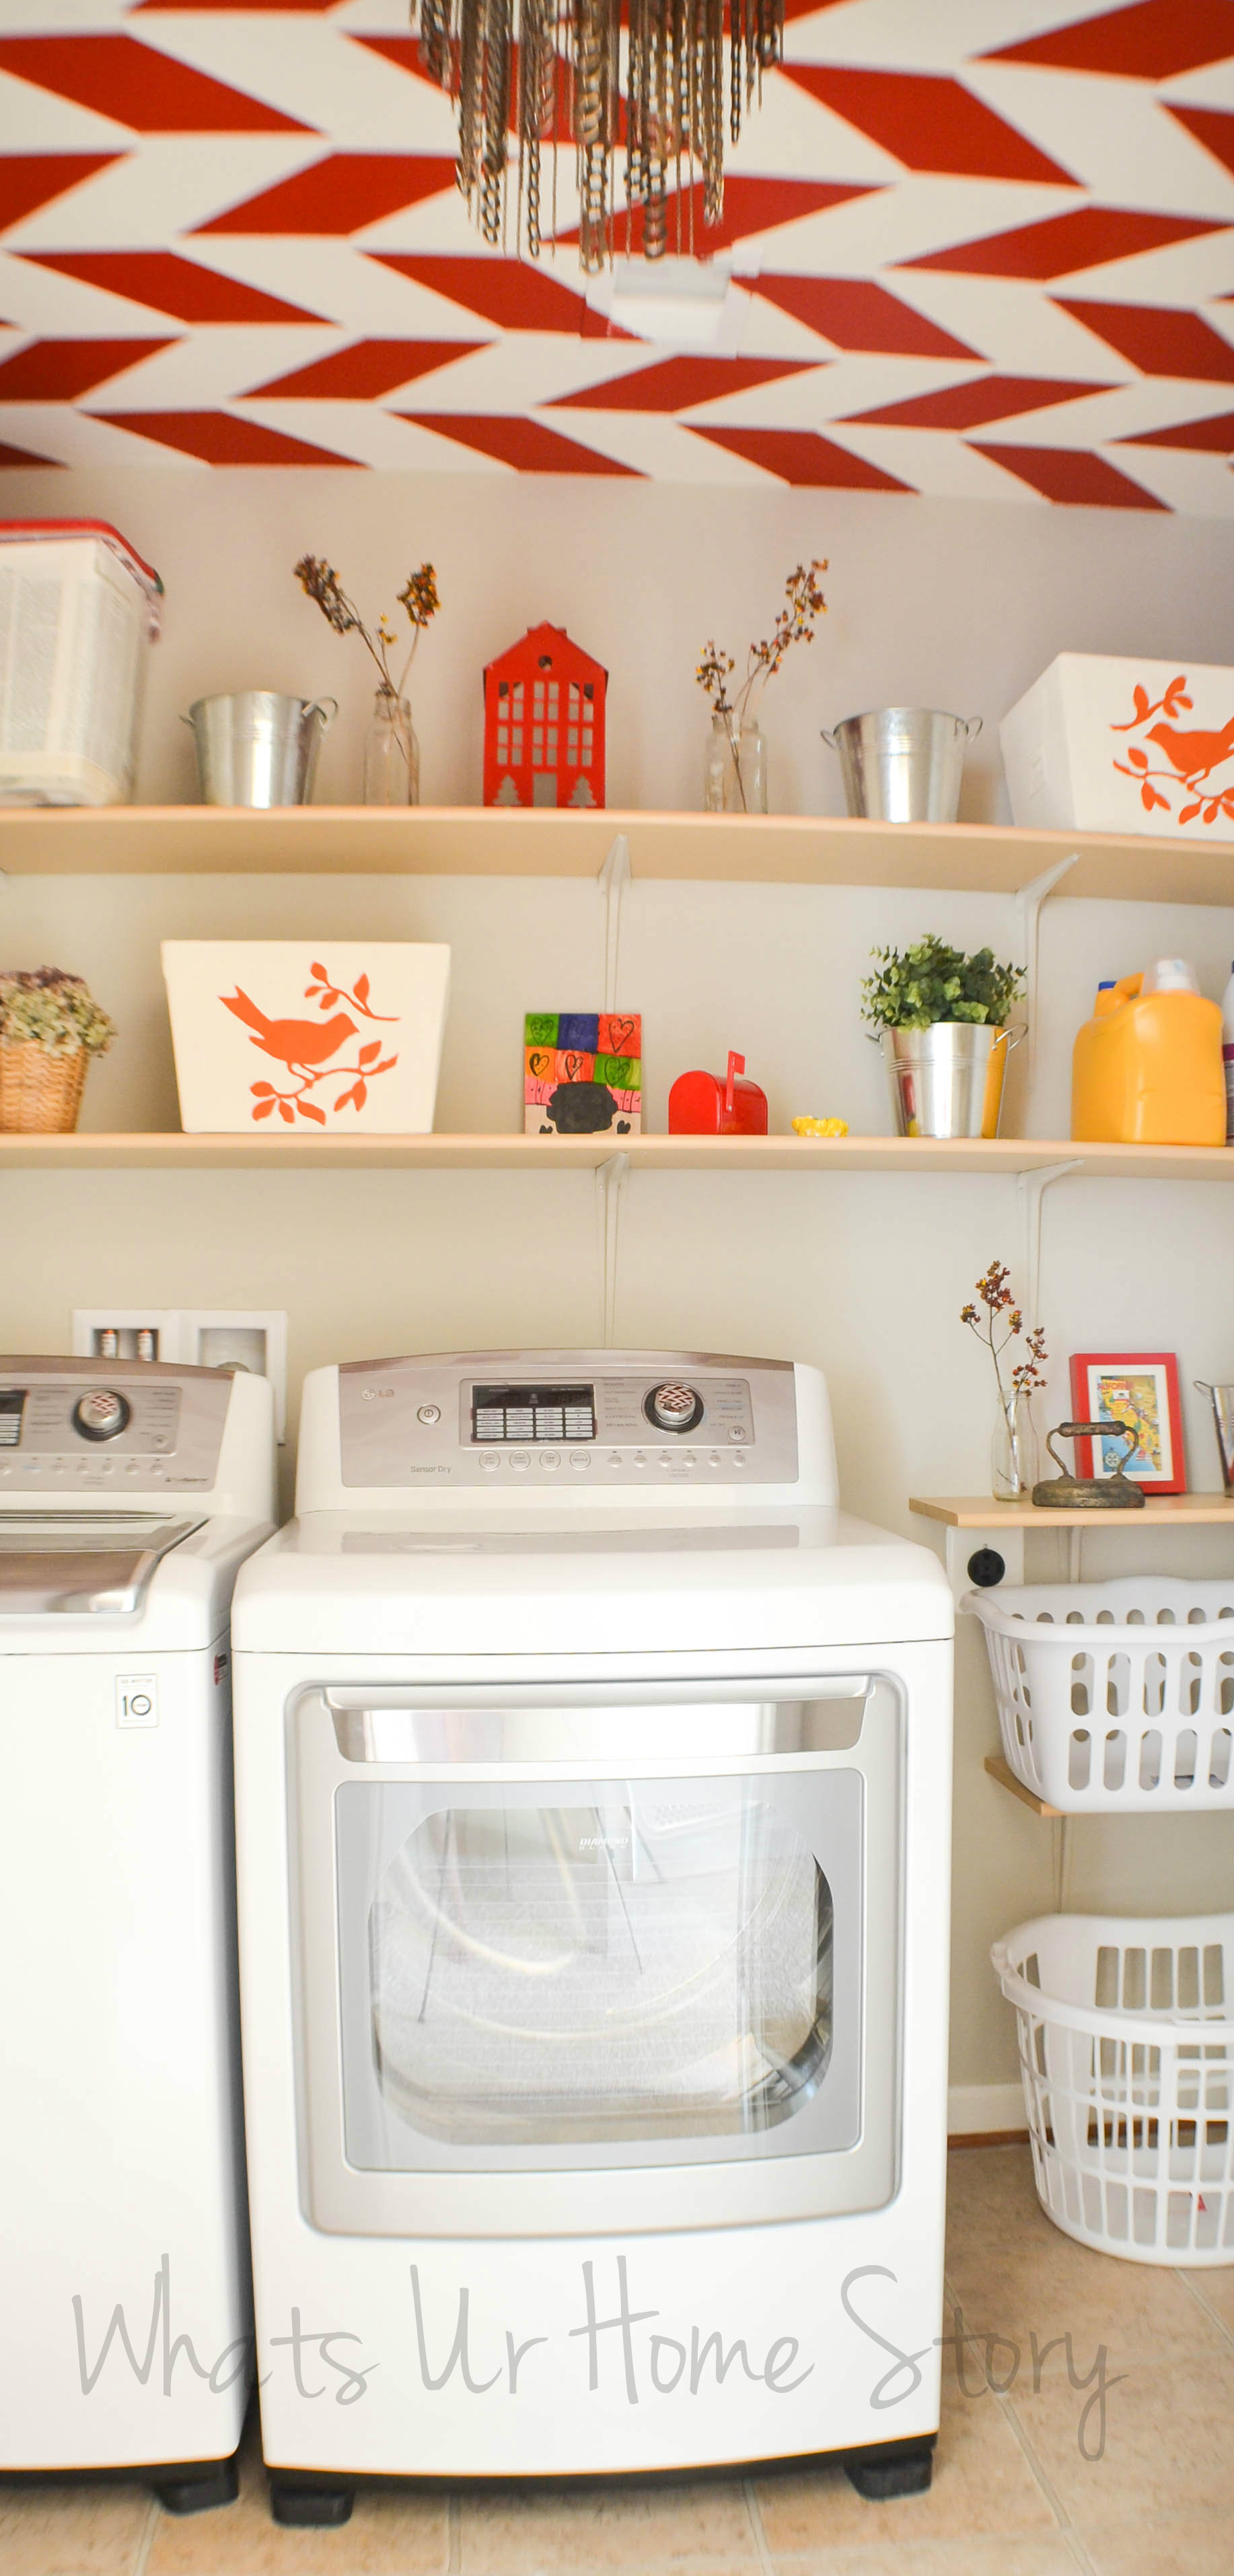 simple diy wall shelves for the laundry room whats ur